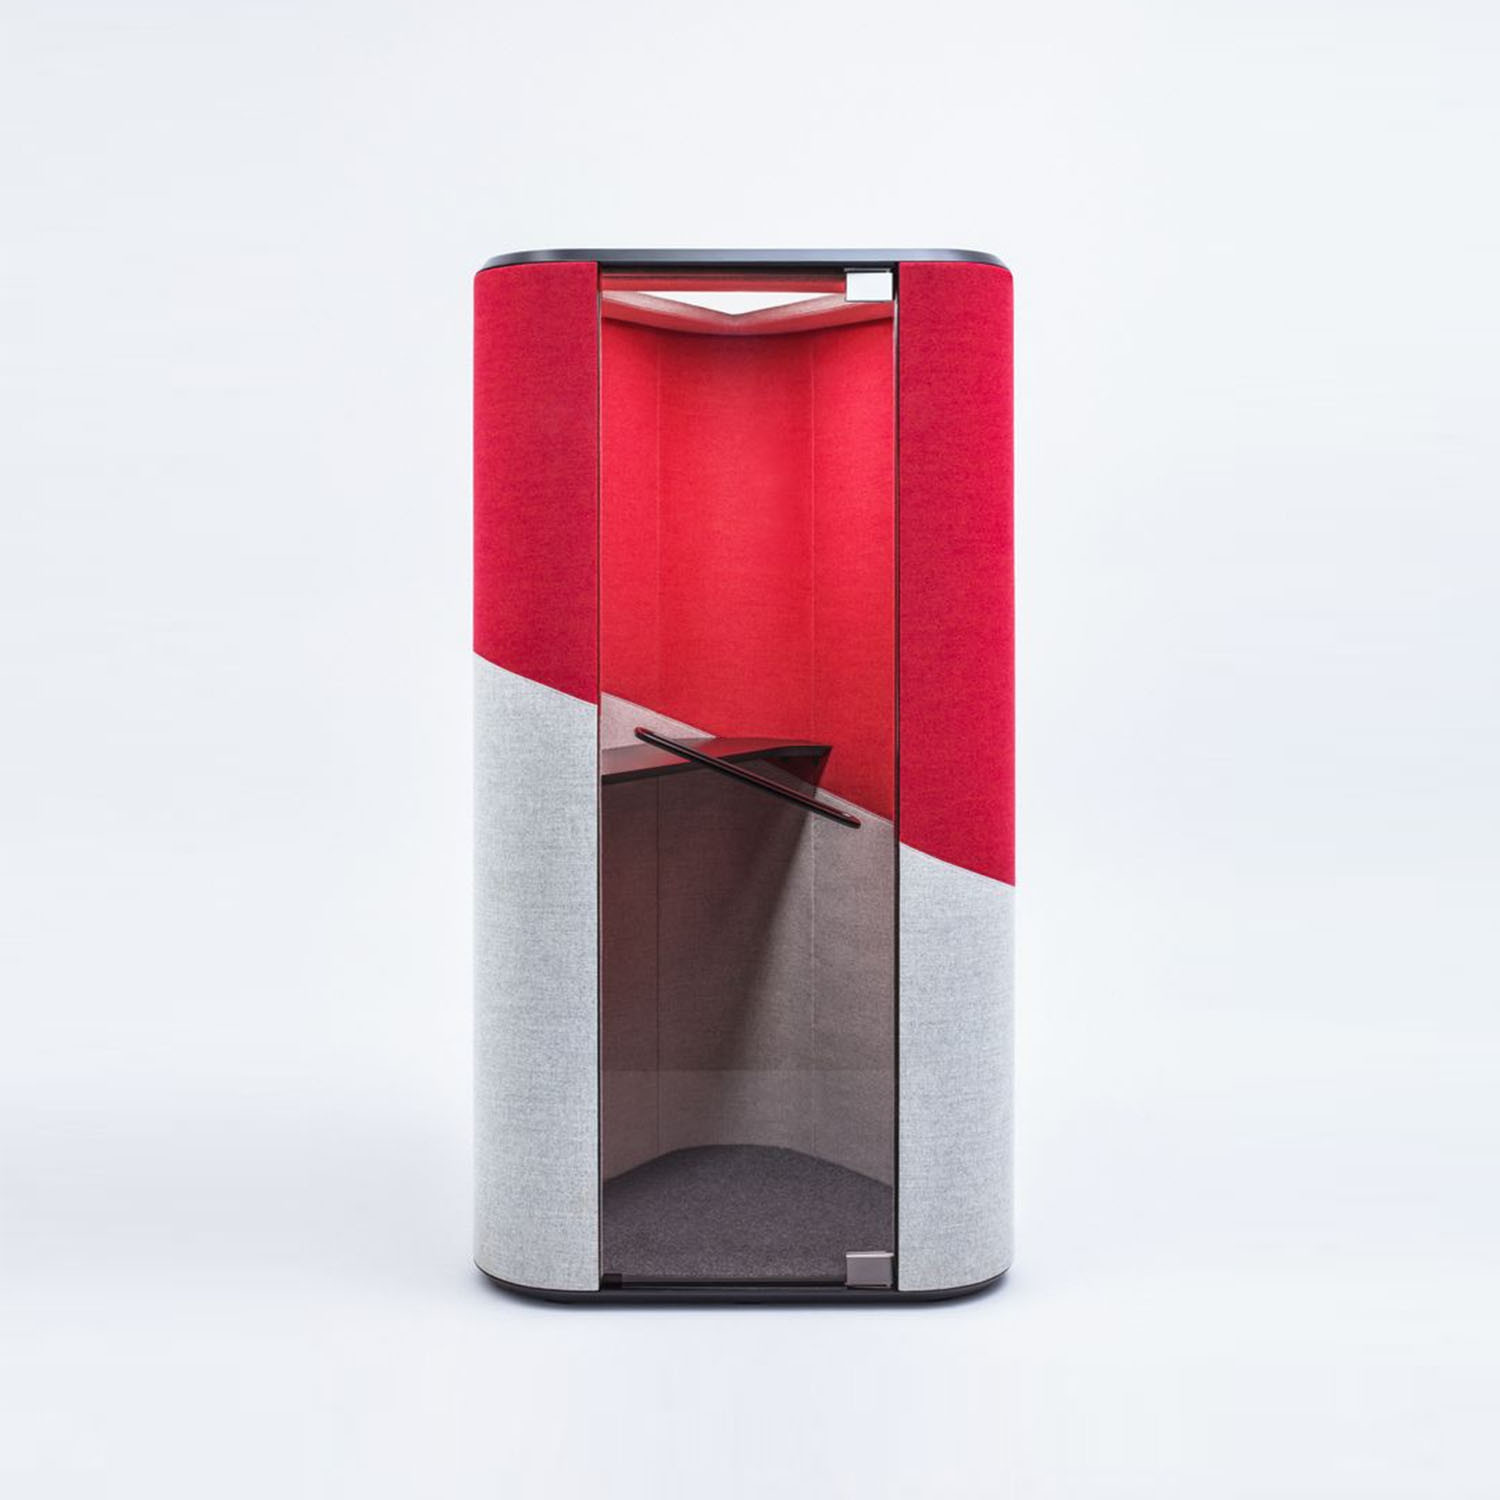 Hana Acoustic Phone Booth Front View